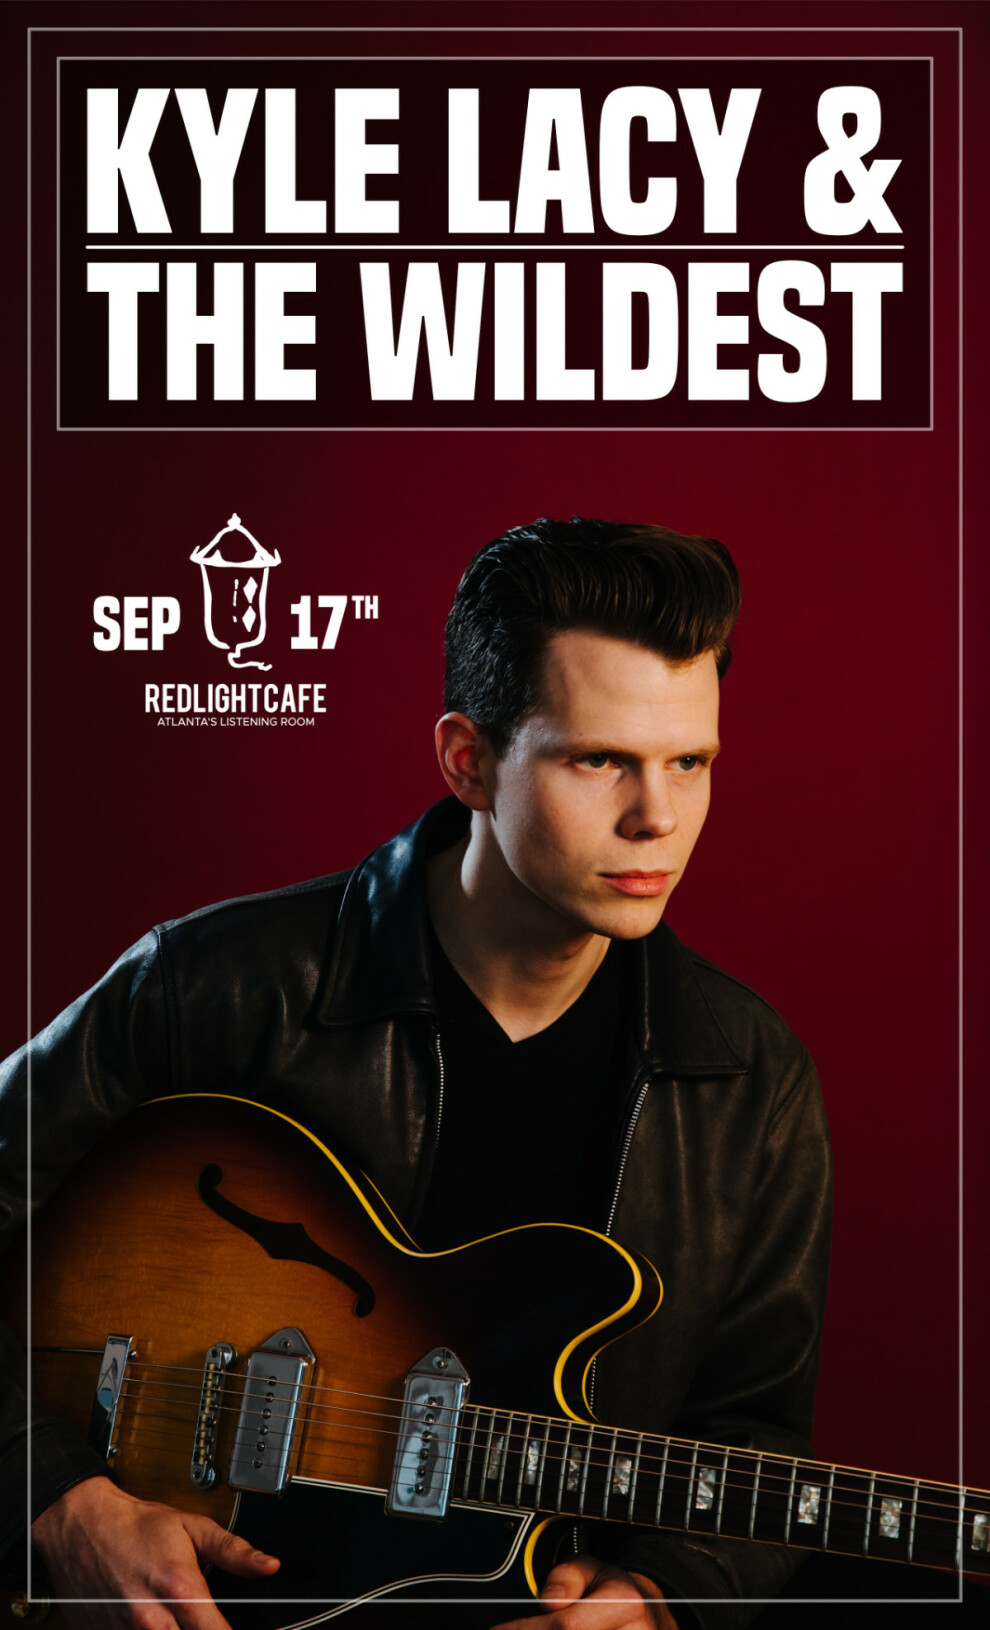 Kyle Lacy And The Wildest At Red Light Cafe Atlanta Ga Sep 17 2019 Poster 1200